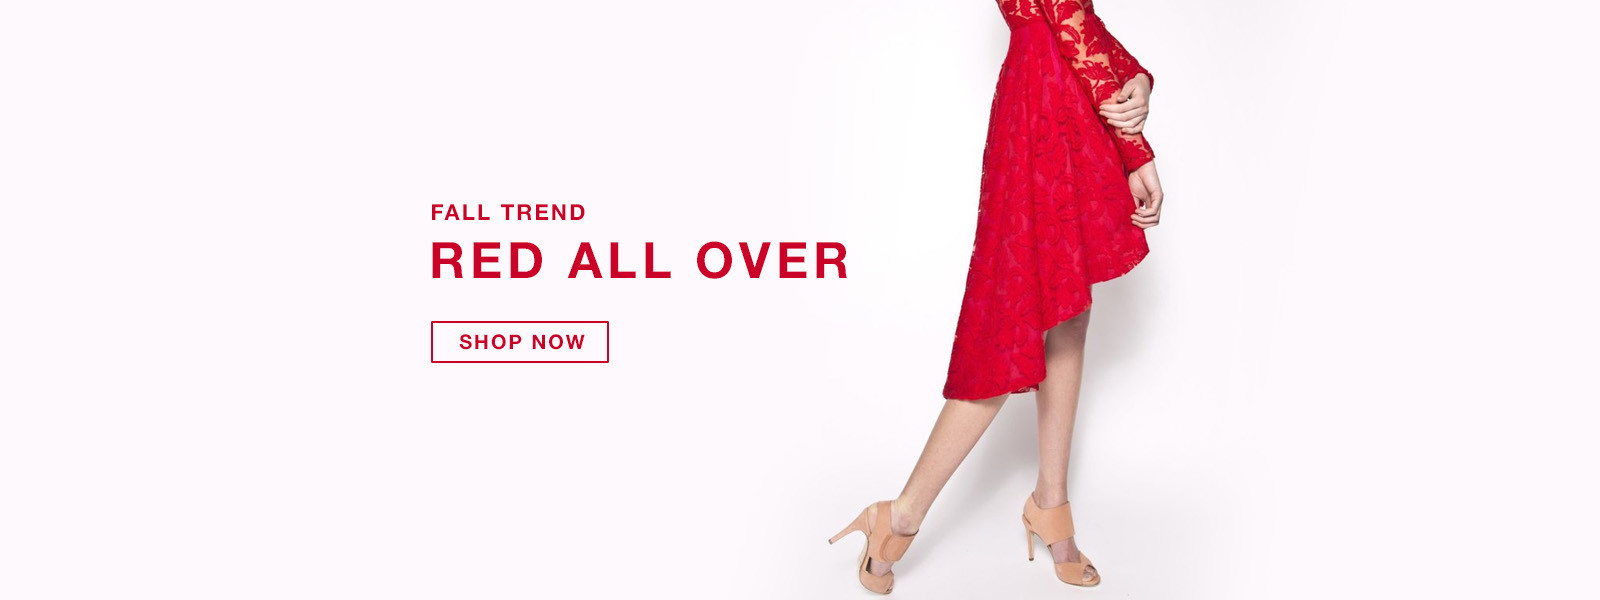 RED ALL OVER Fall Trend